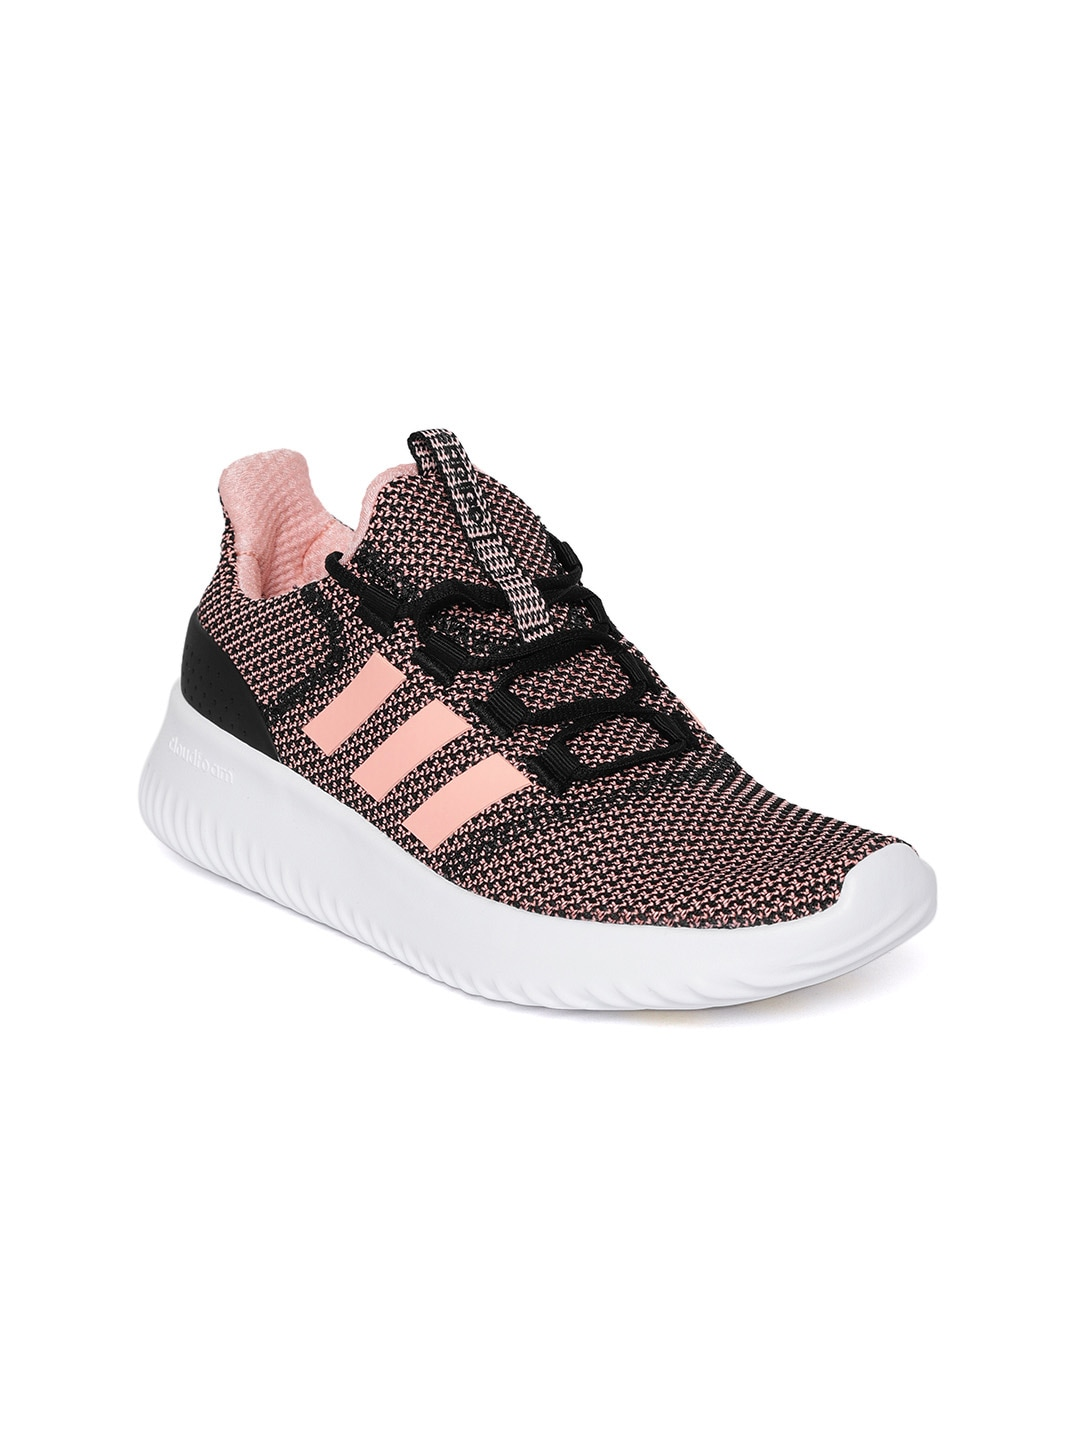 the latest 0b8c3 62bba Womens Adidas Shoes - Buy Adidas Shoes for Women Online in I